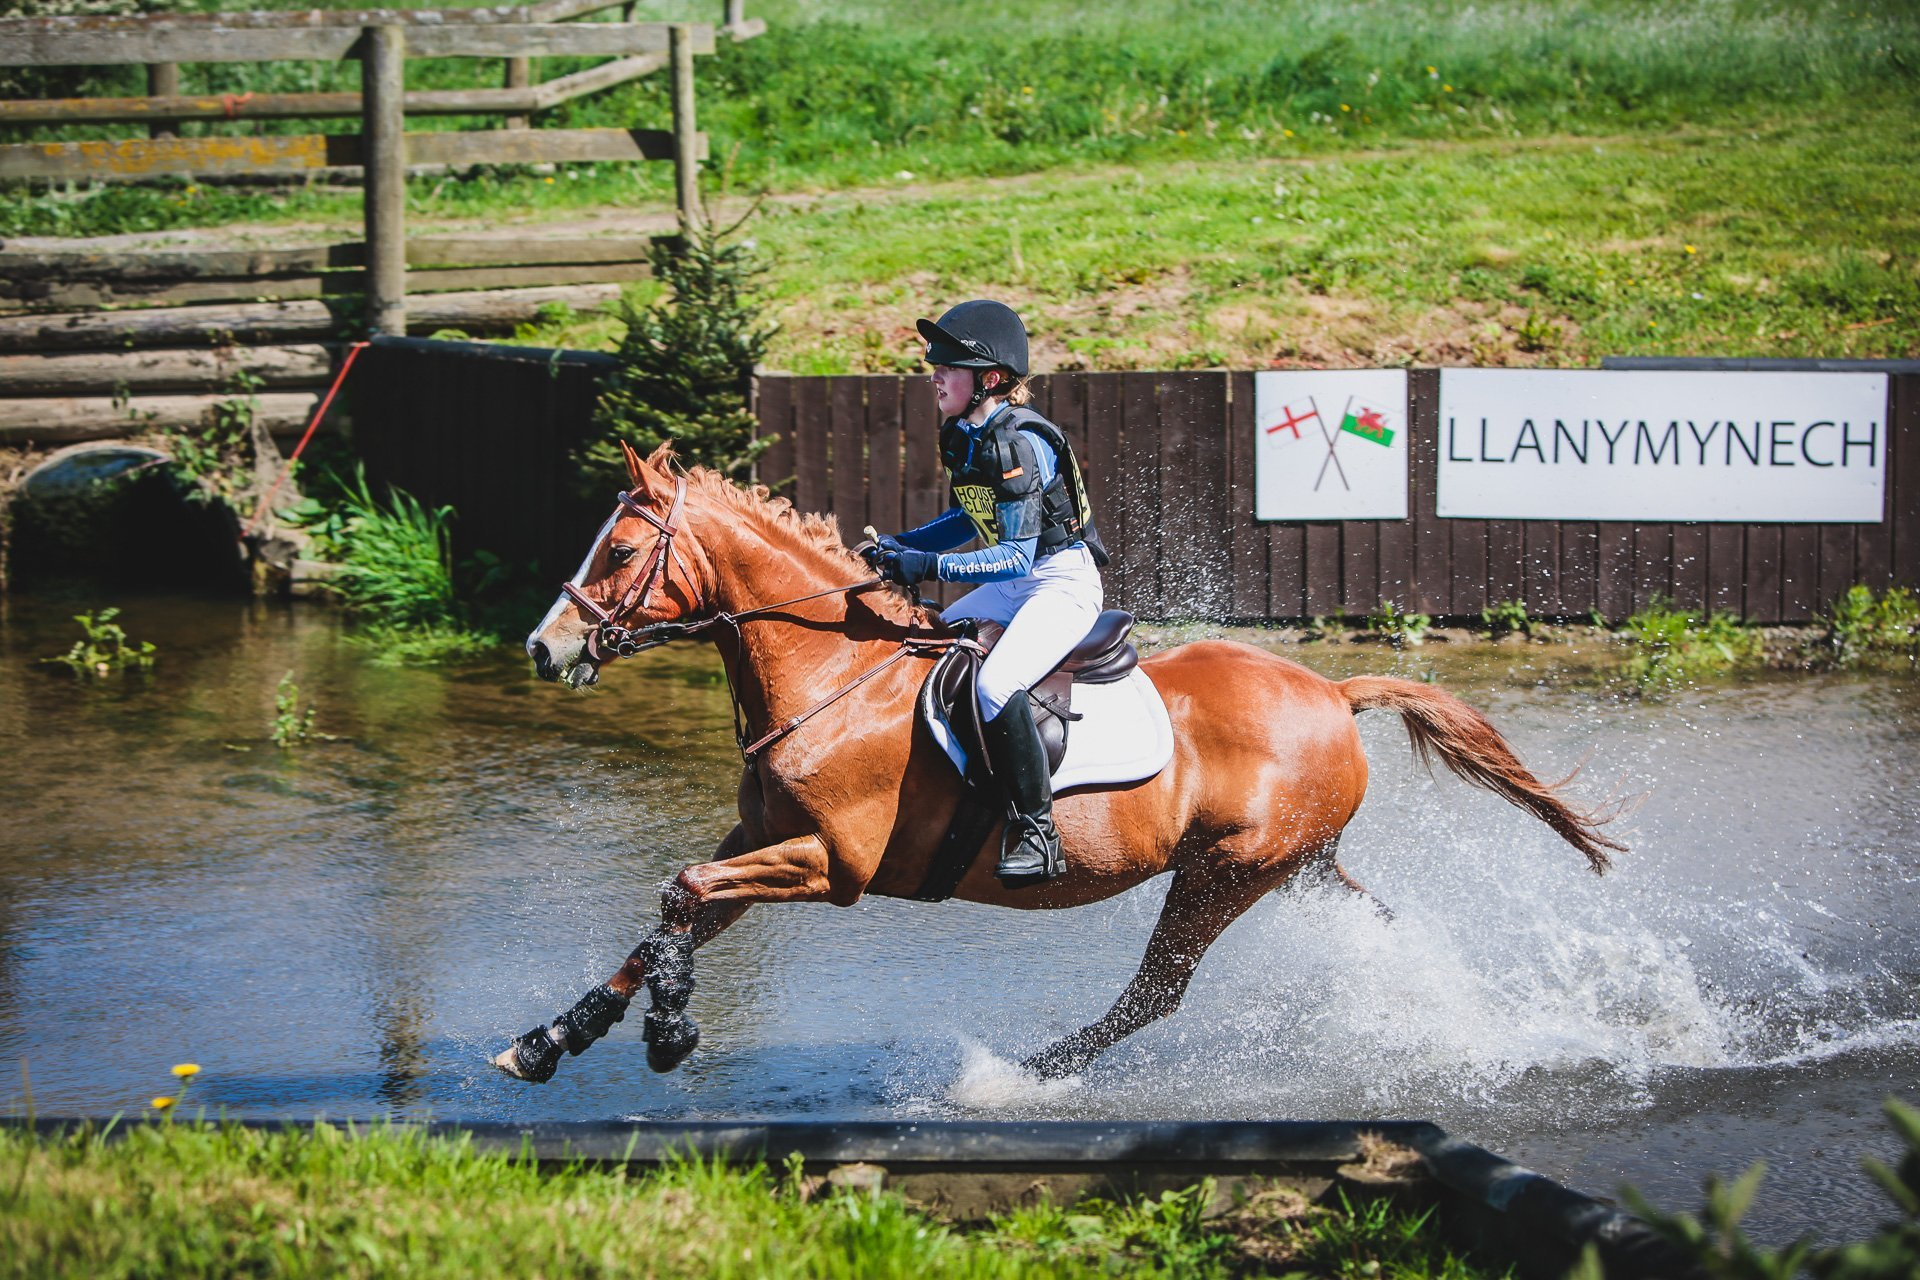 in the water at Llanymynech HT - a b*spoke competition shoot